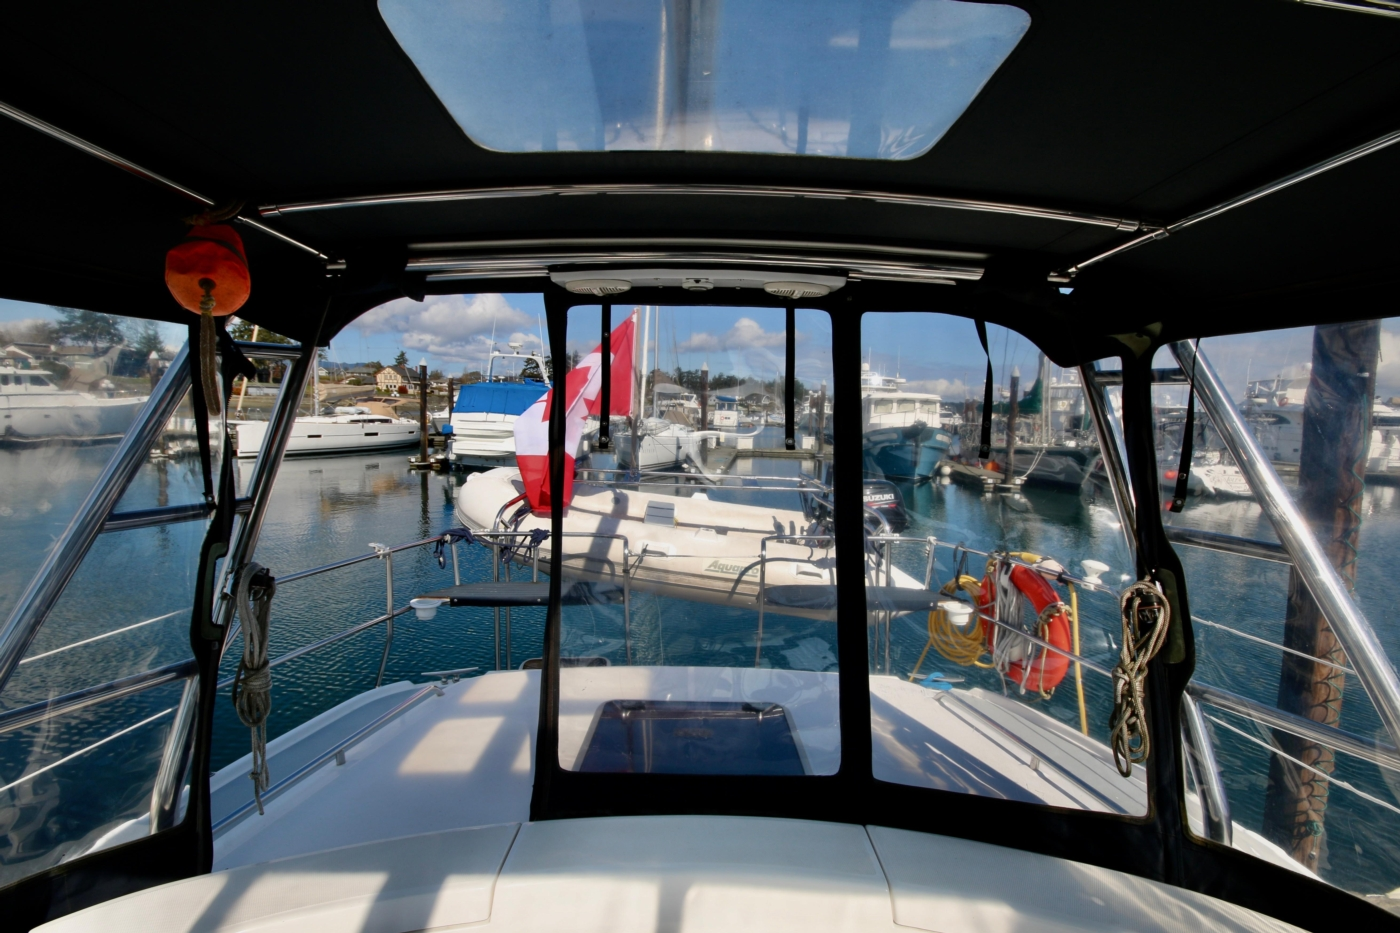 2004 Hunter Passage 420, The view aft from the cockpit